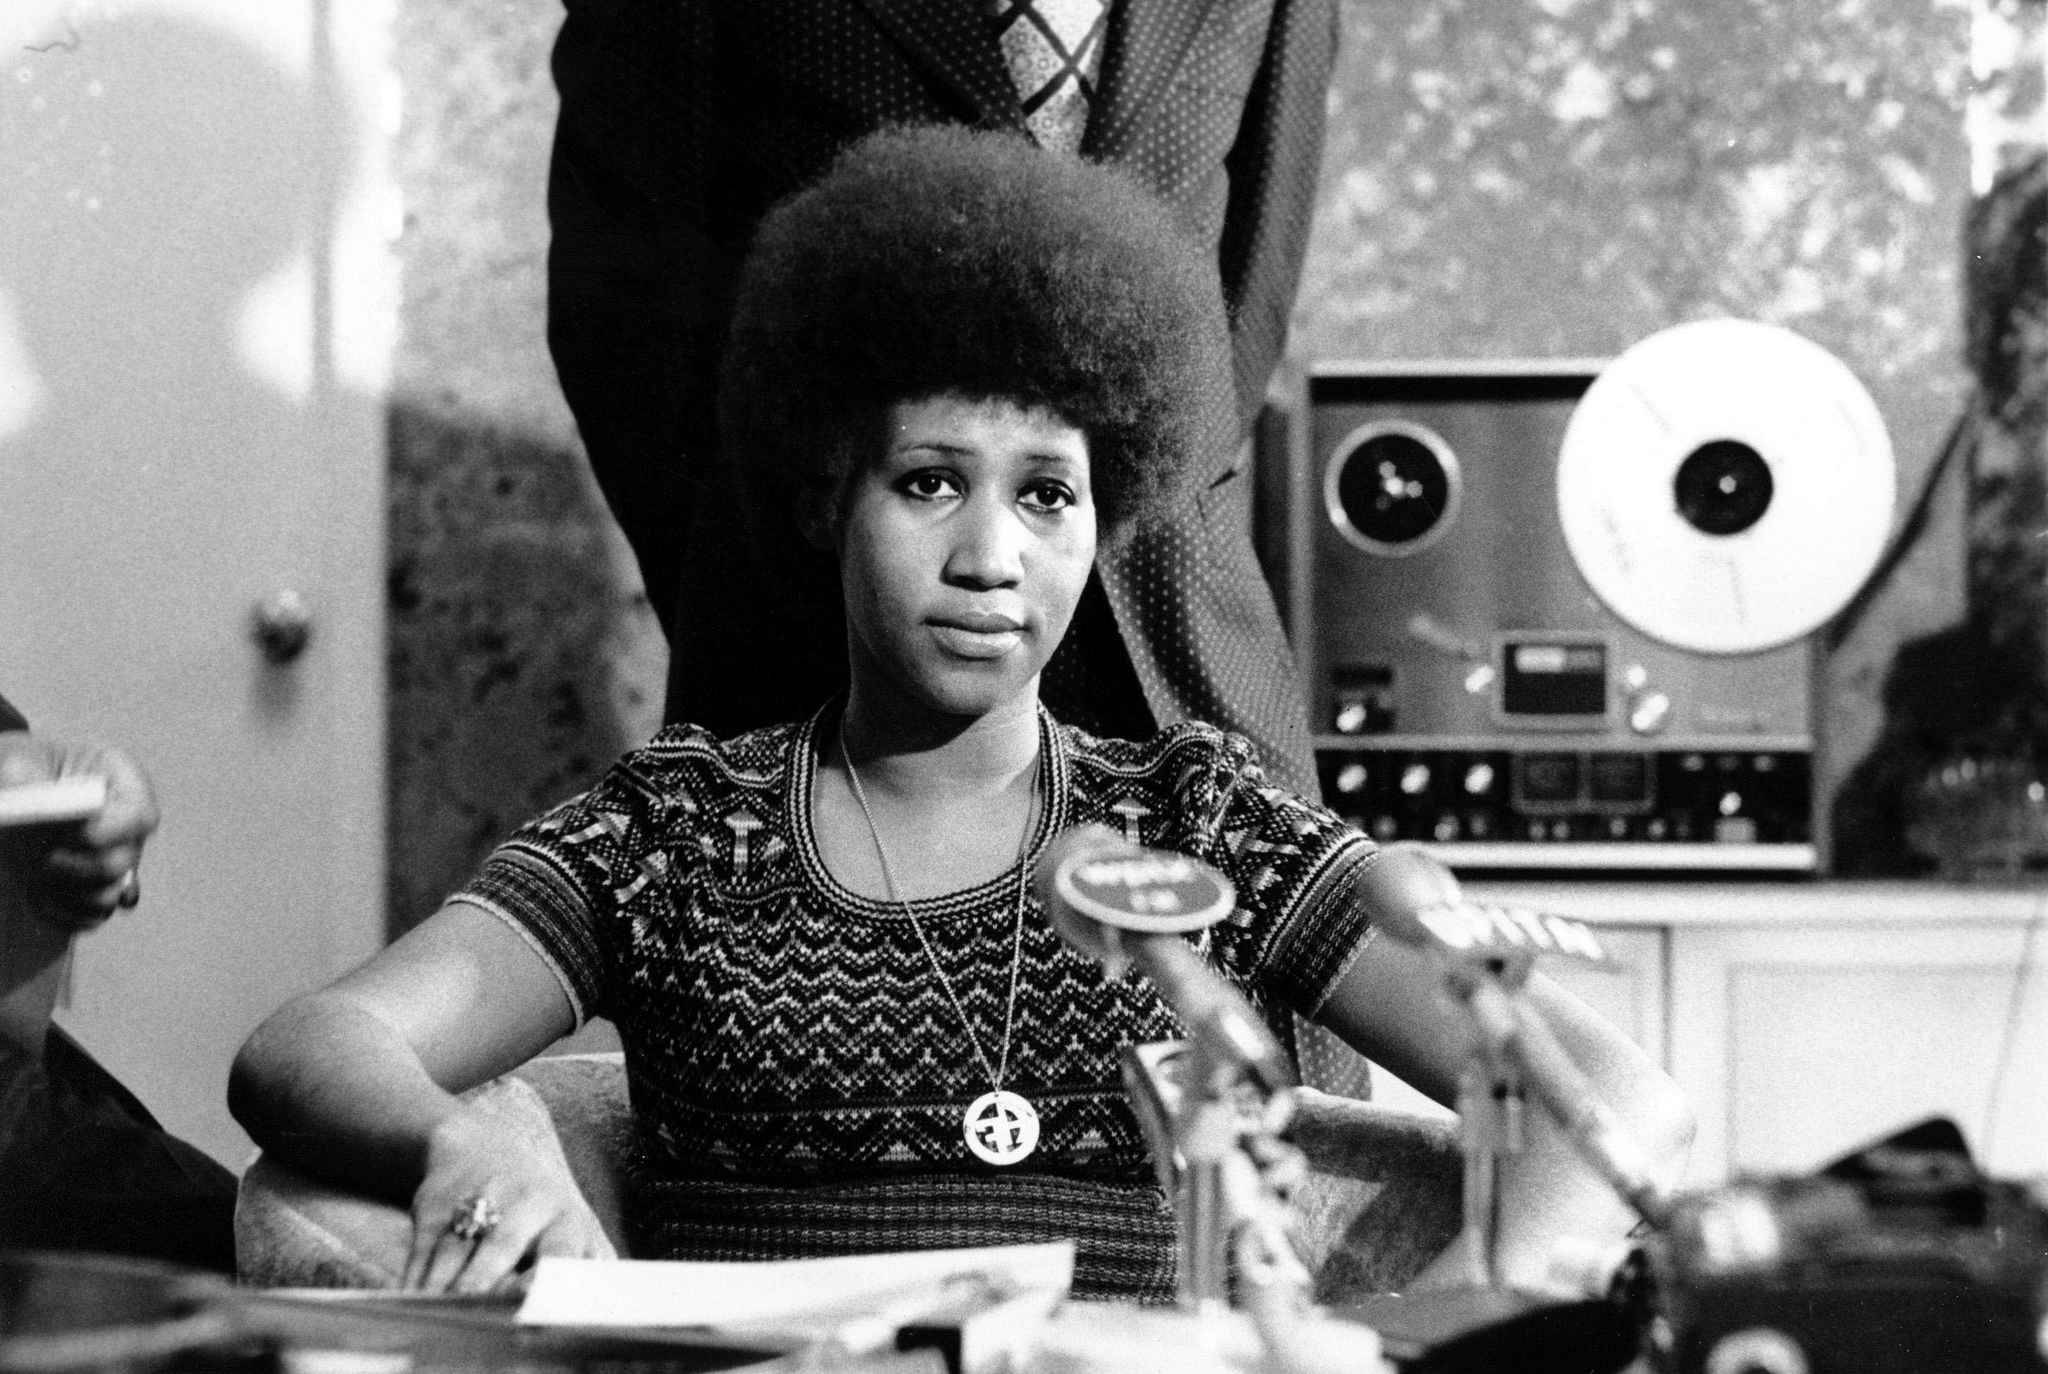 Soul singer Aretha Franklin is shown at a news conference on March 26, 1973. (AP Photo)/APHS157/AP_730326054/;R26532;/1508061613